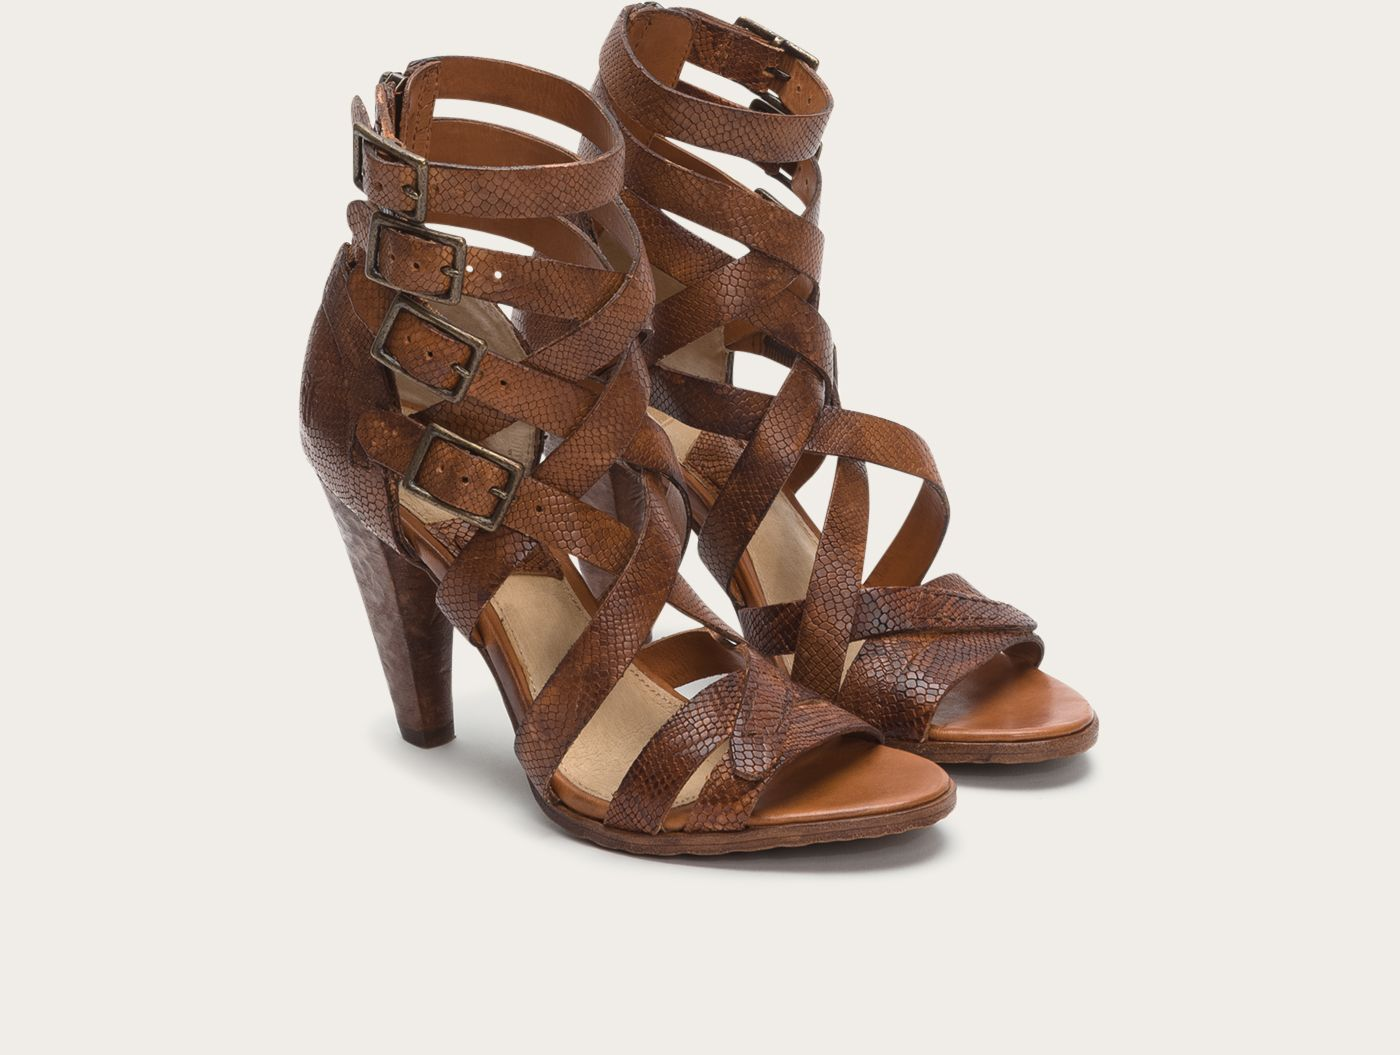 With its textured, carved heel and dramatic style, this strappy criss-cross sandal makes quite a statement. The intricate play of vintage leather straps are embossed with a subtle snake design and anchored with hand-hammered buckles. A sandal that's been known to stop traffic and steal scenes.